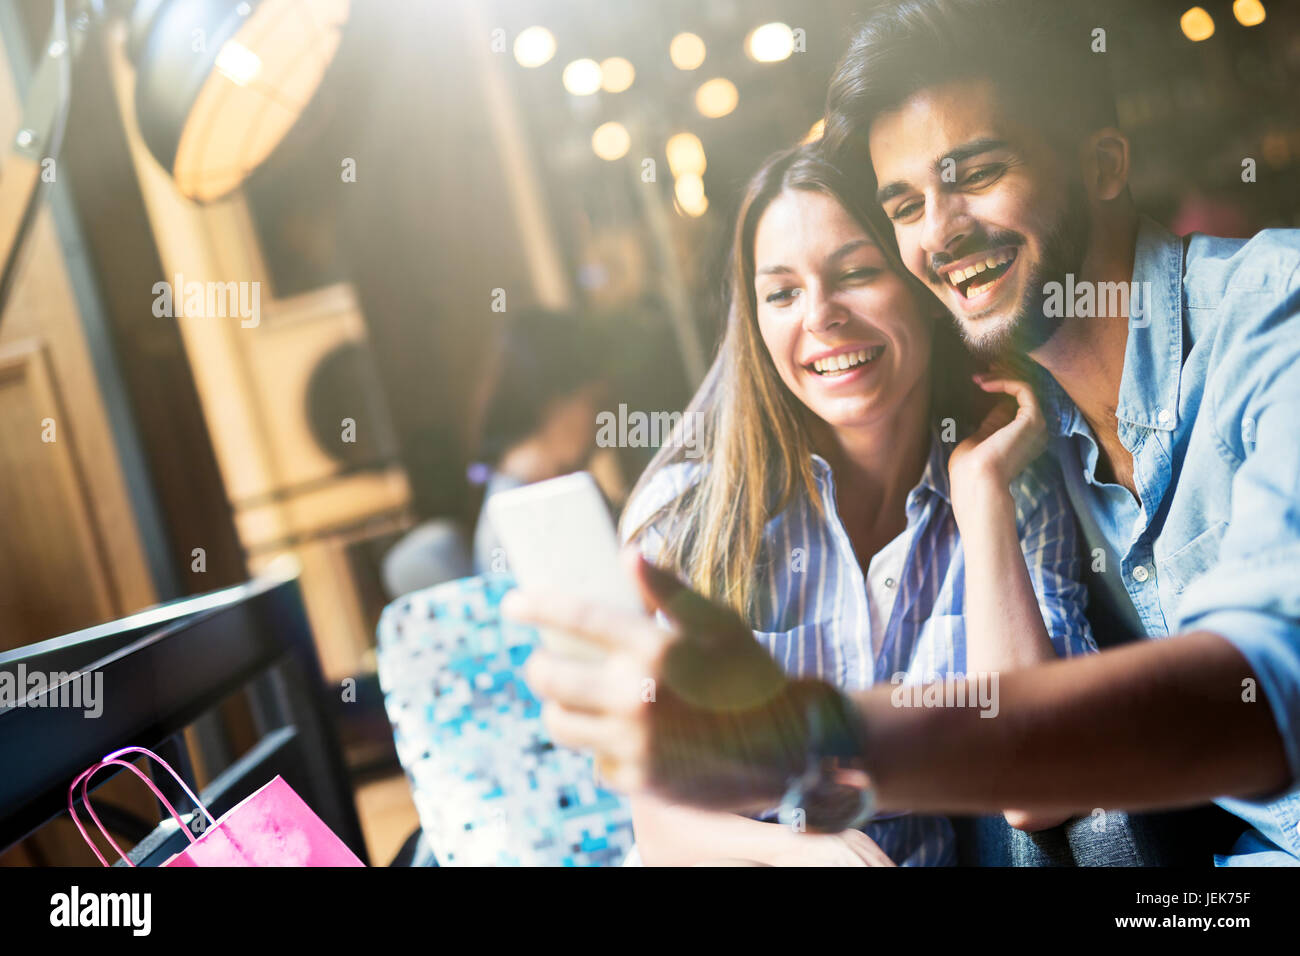 Young attractive cheerful couple on date in coffee shop - Stock Image